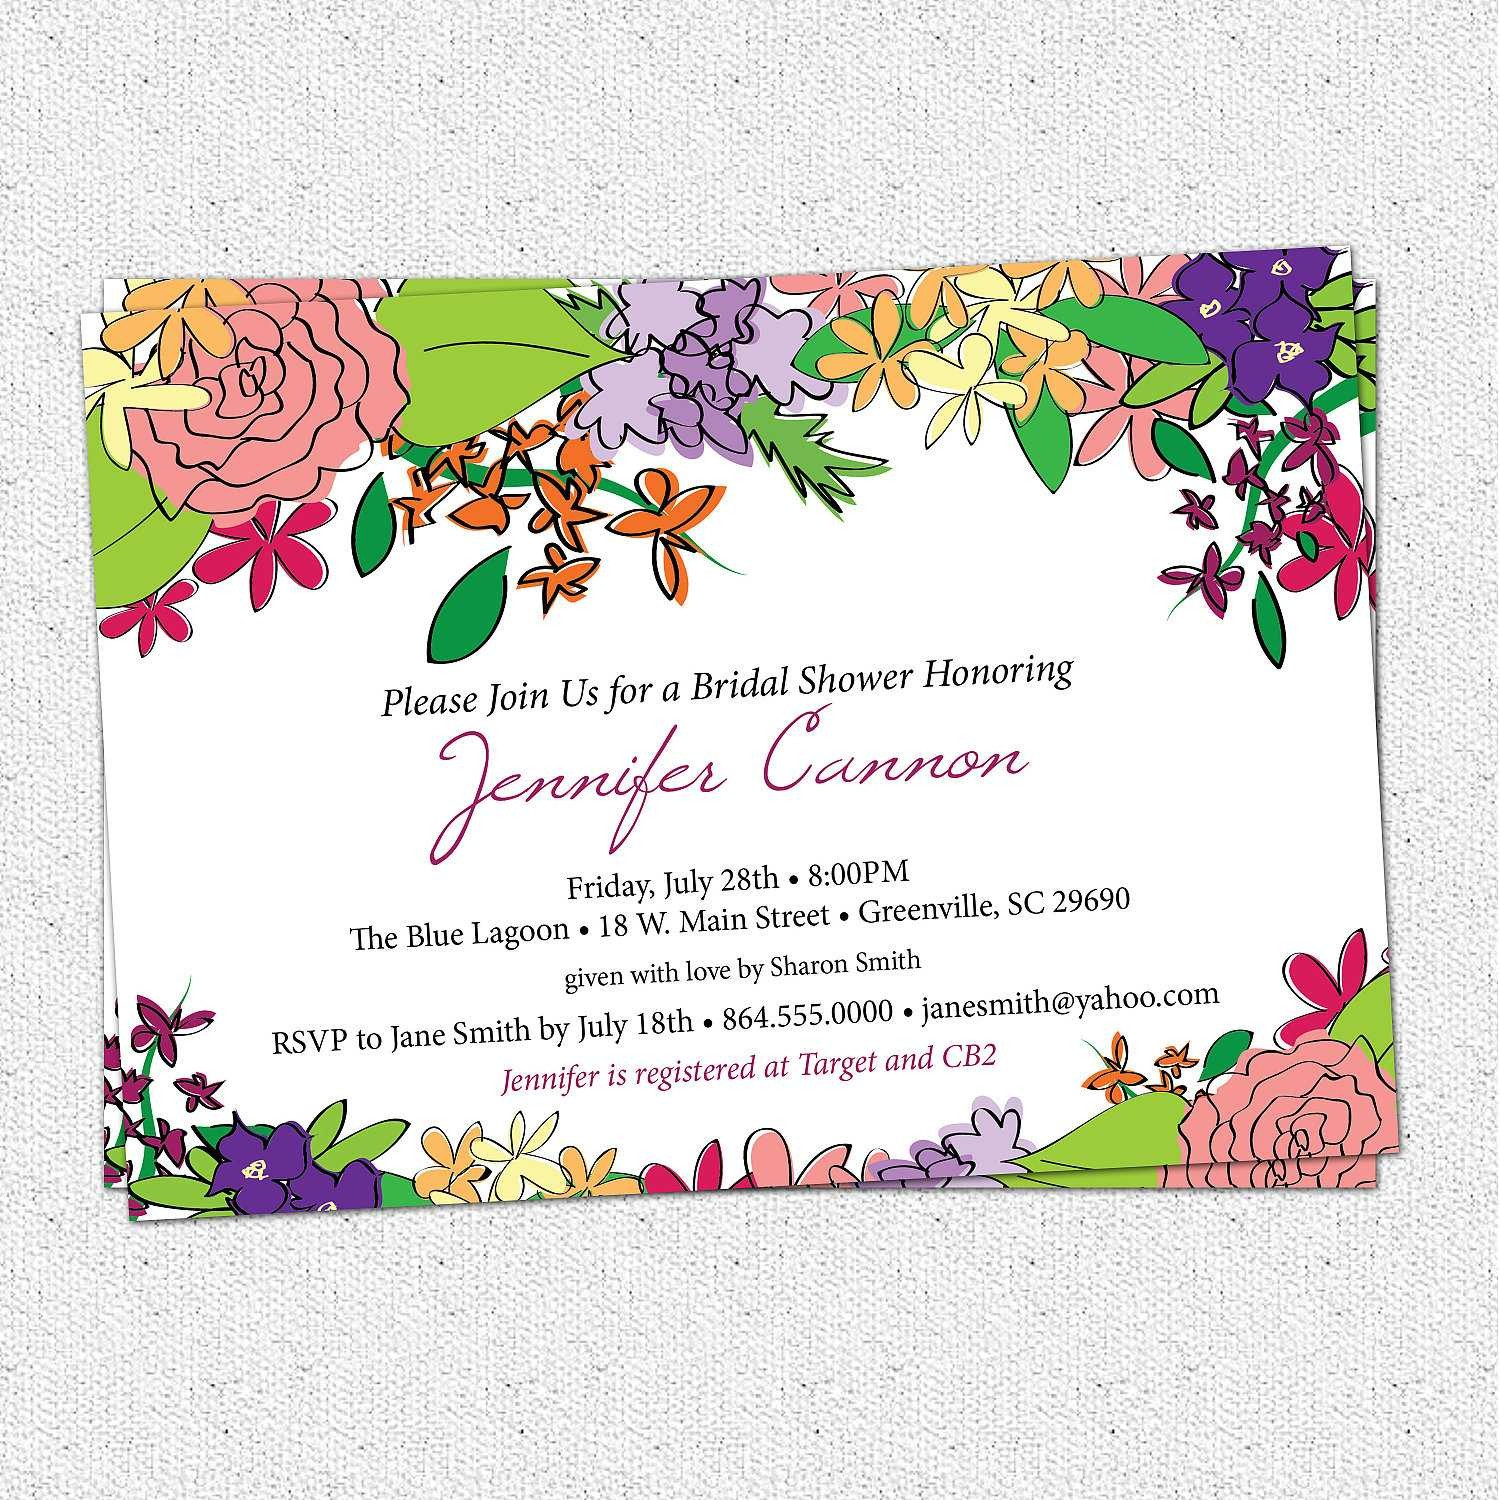 garden birthday party invitation wording ; invitation-wording-garden-party-fresh-masquerade-birthday-party-invitation-wording-garden-party-of-invitation-wording-garden-party